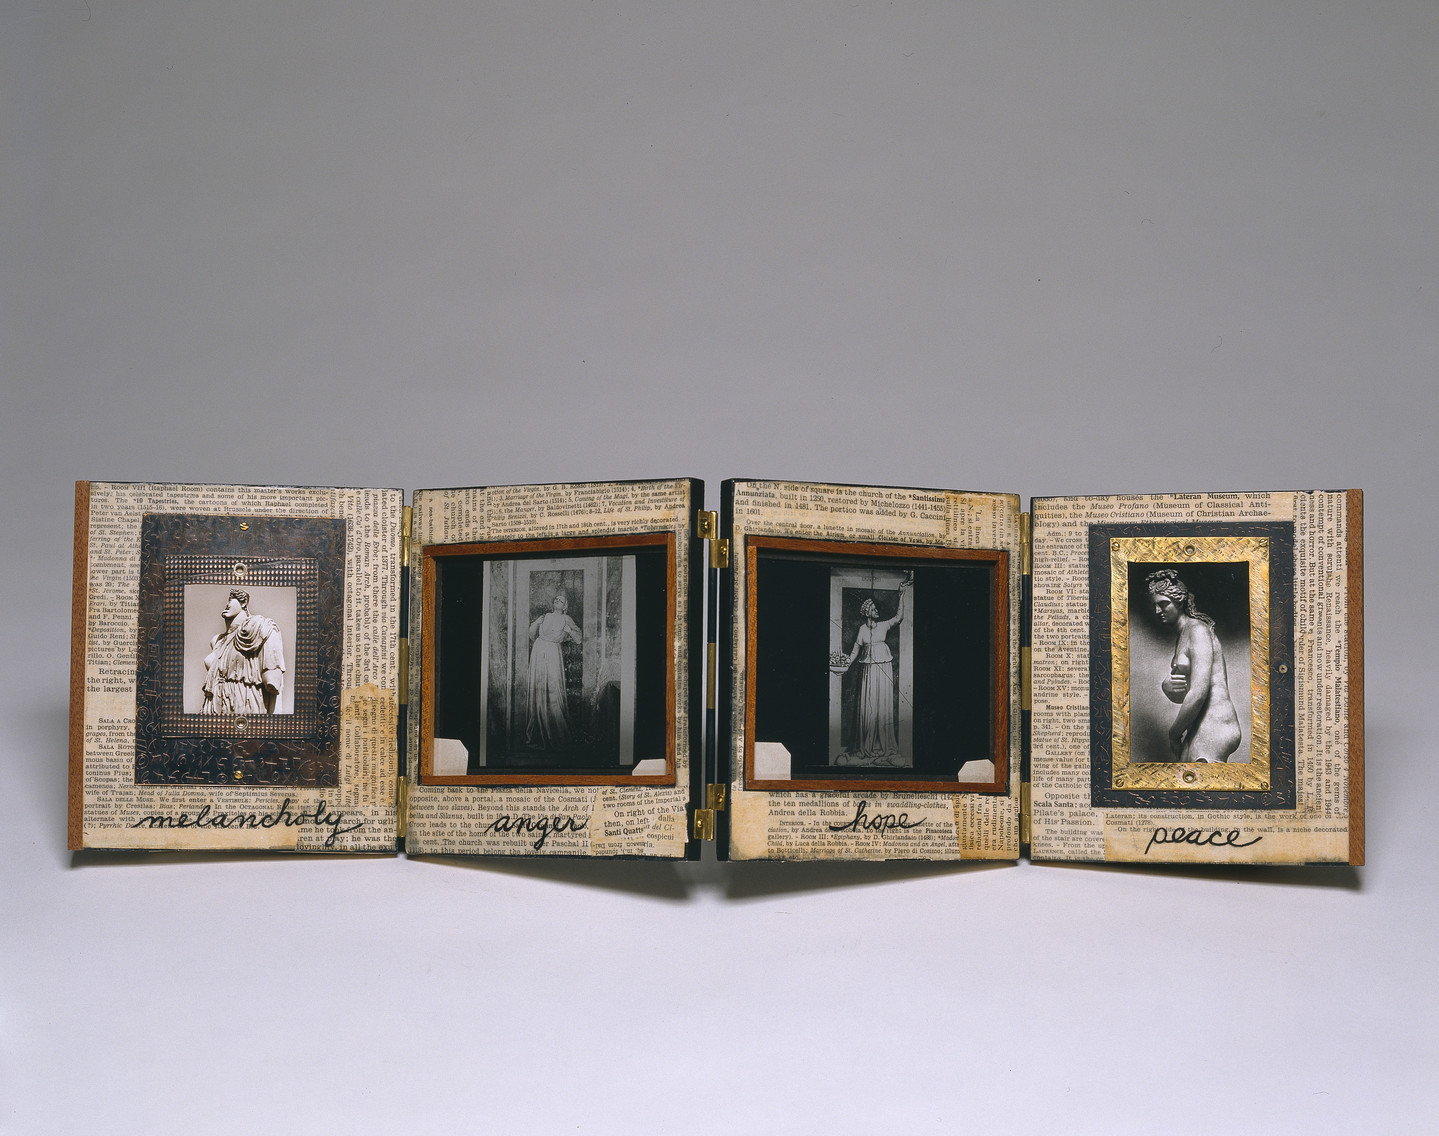 An open accordian-style book with four panels. On each panel is newsprint over which is a black and white photograph of a person. Under each figure is written, from left to right: melancholy, anger, hope, peace.